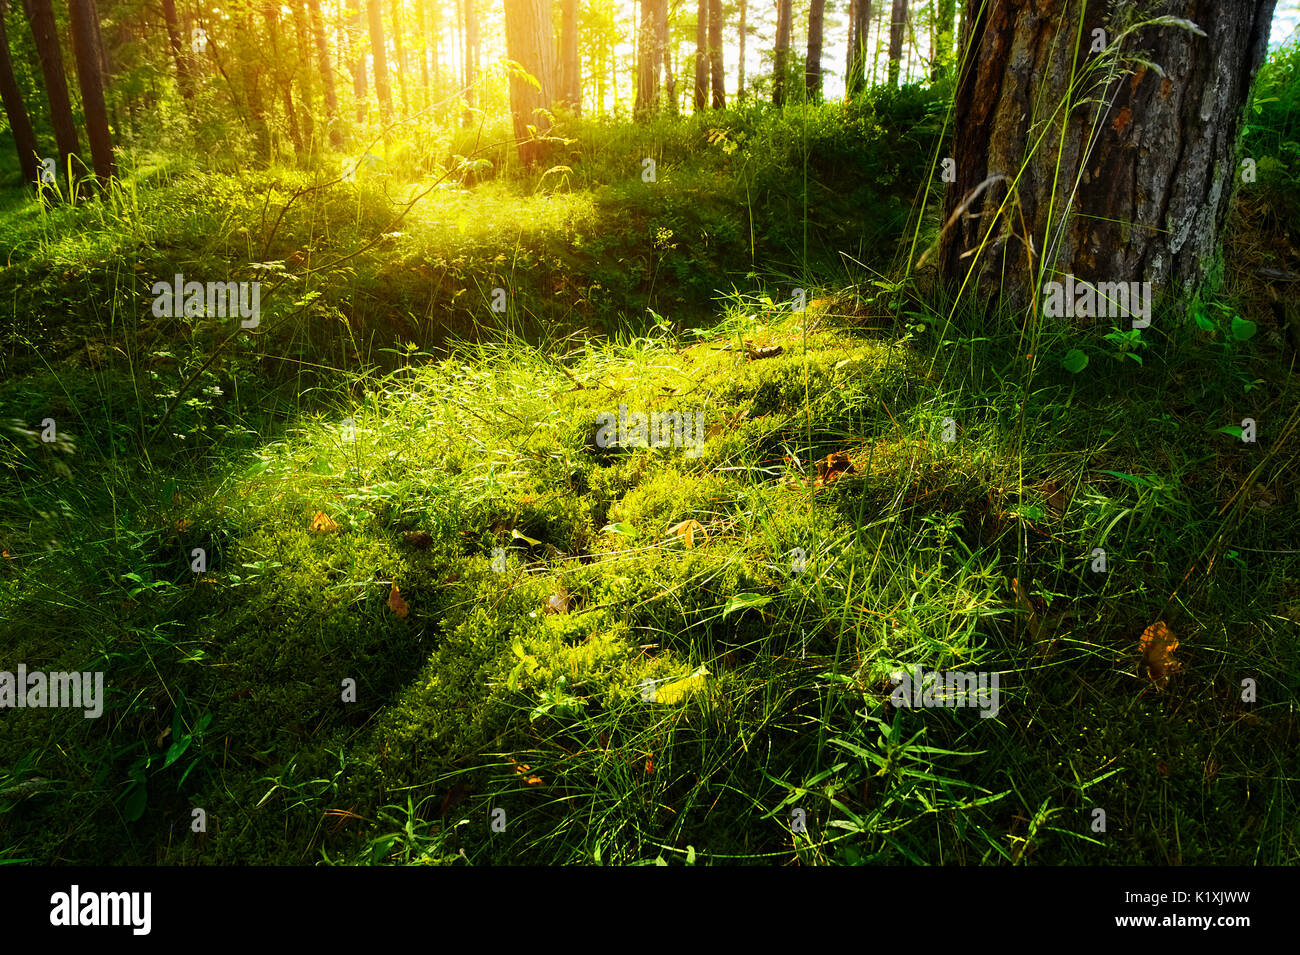 Summer forest undergrowth vegetation. Grass, shrubs and moss growing in pinewood understory or underbrush backlit by the sun. Pomerania, Poland. - Stock Image